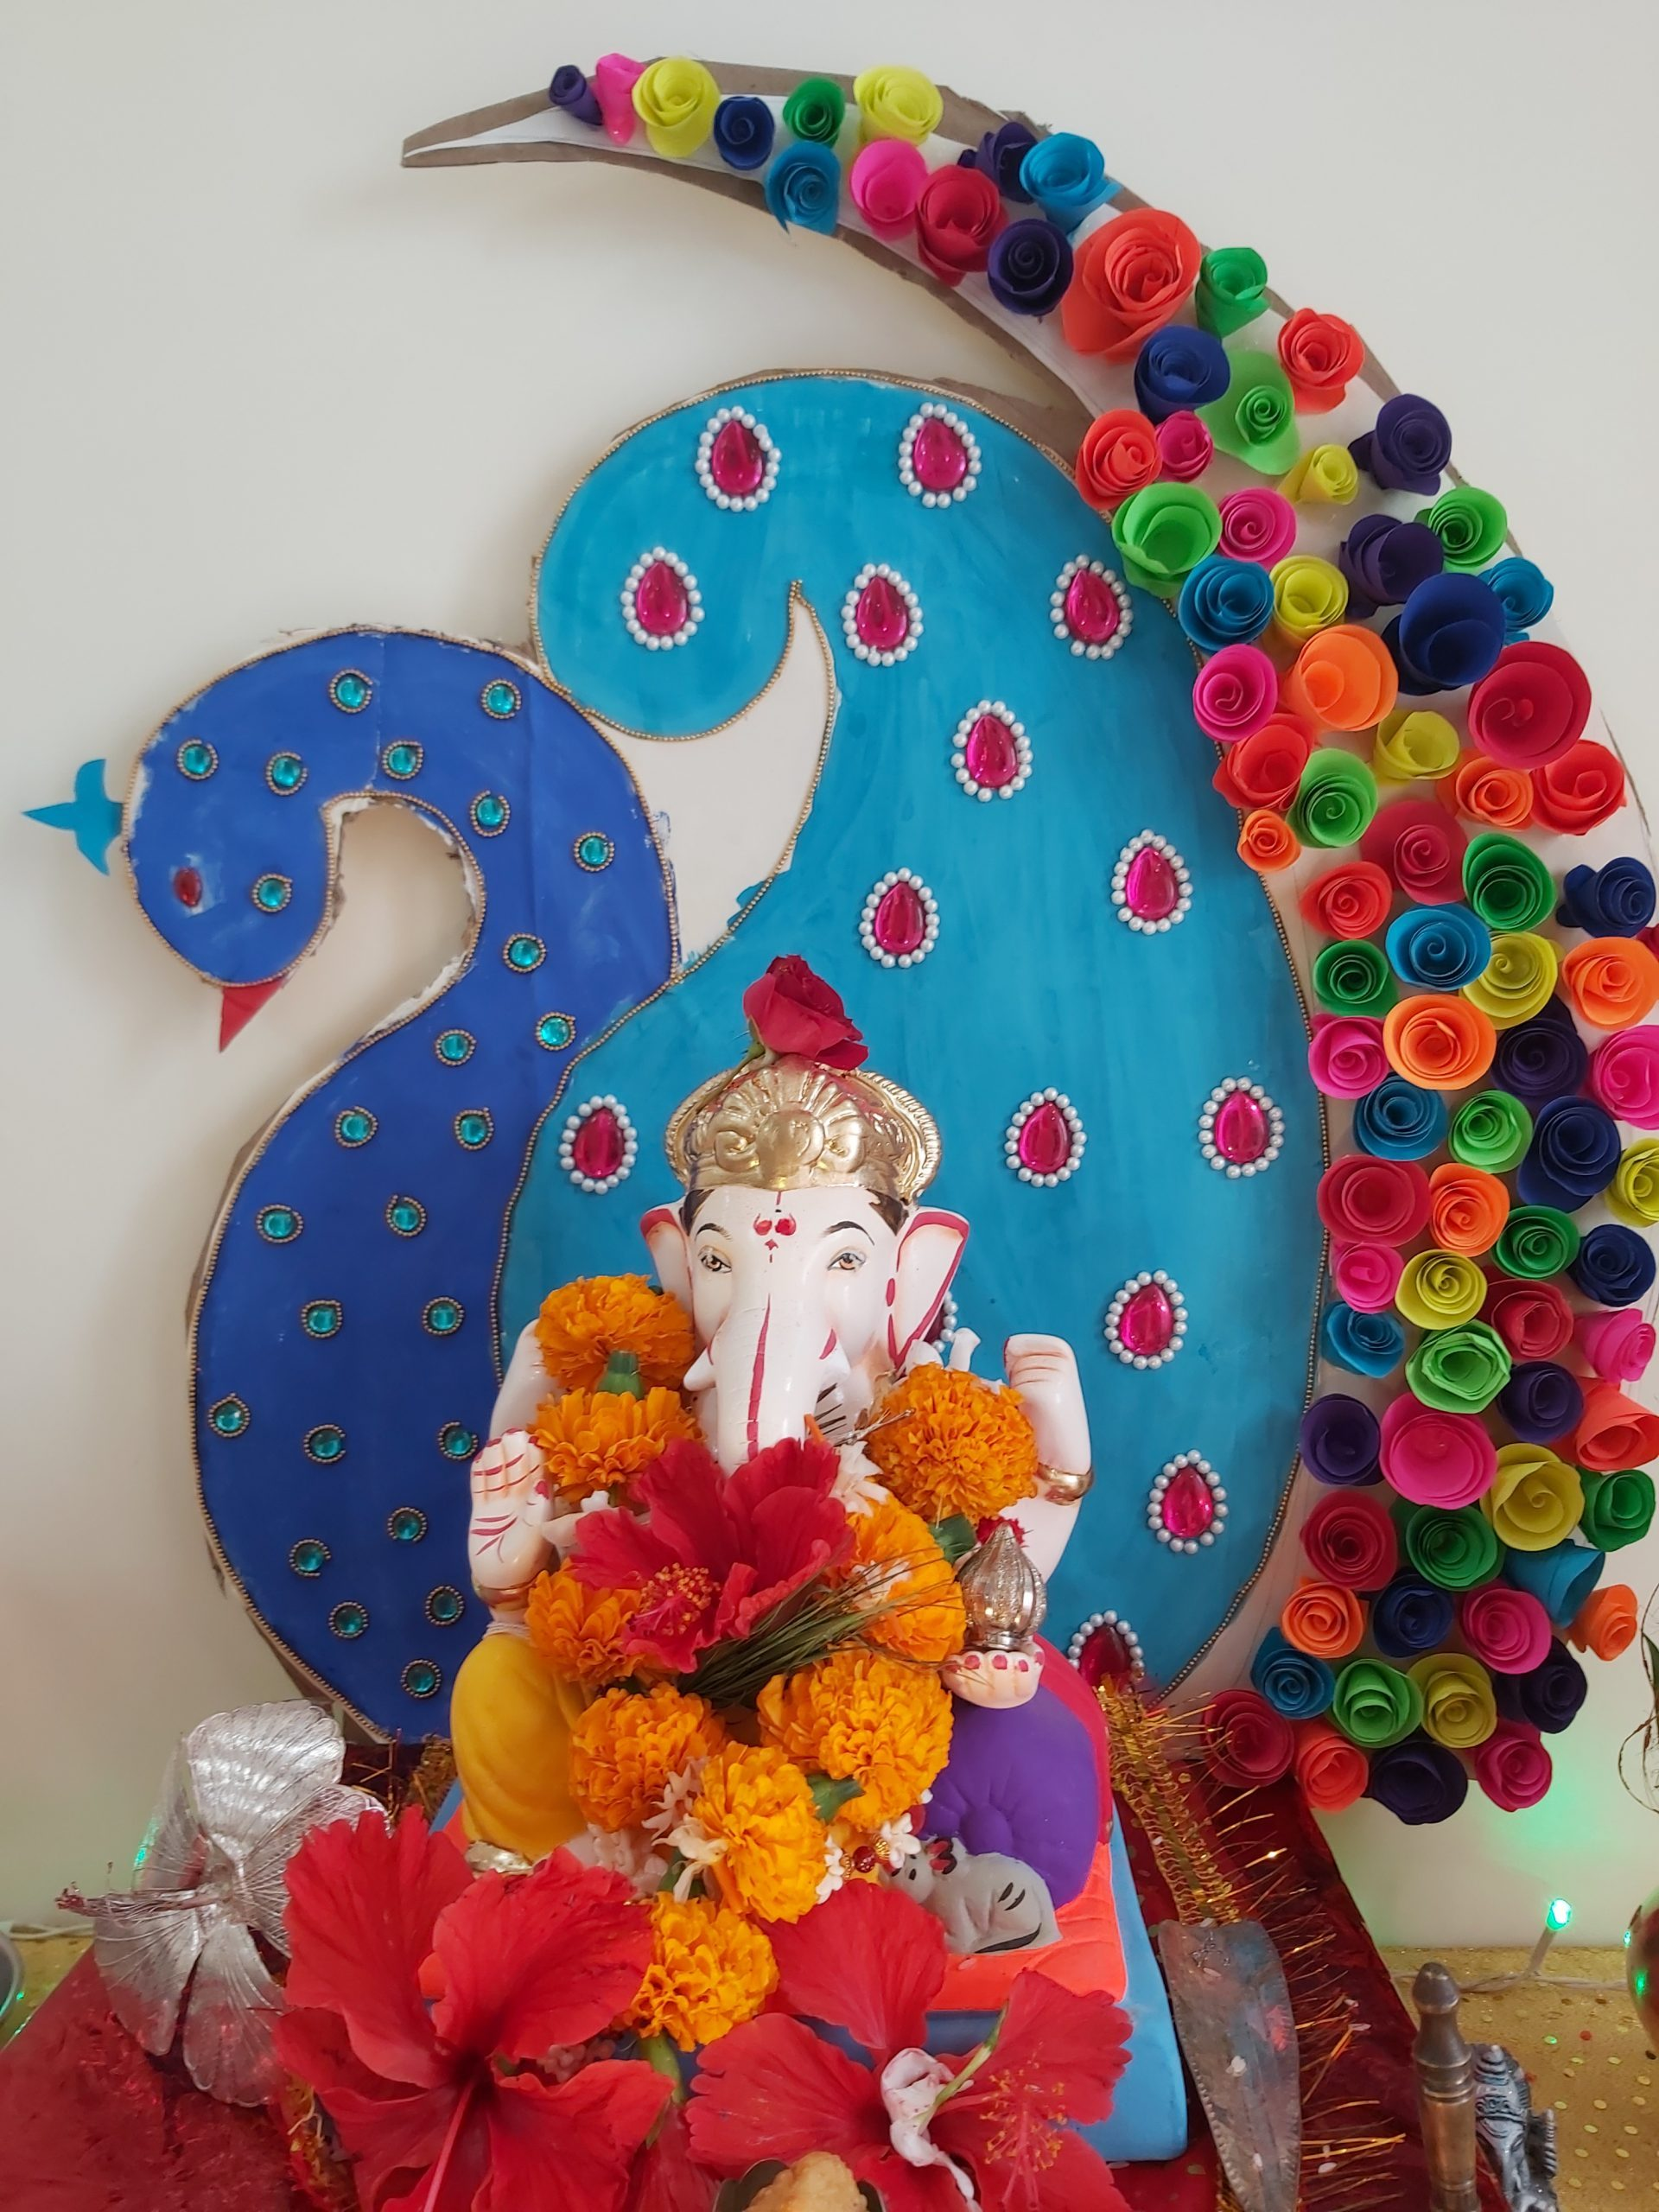 3rd prize winner - shraddha shravagi, lorelle apartment - wakad 2019 - Ganesha Photo Contest 2019 Shraddha Shravagi - 3rd Prize Winner – Shraddha Shravagi, Lorelle Apartment – Wakad 2019